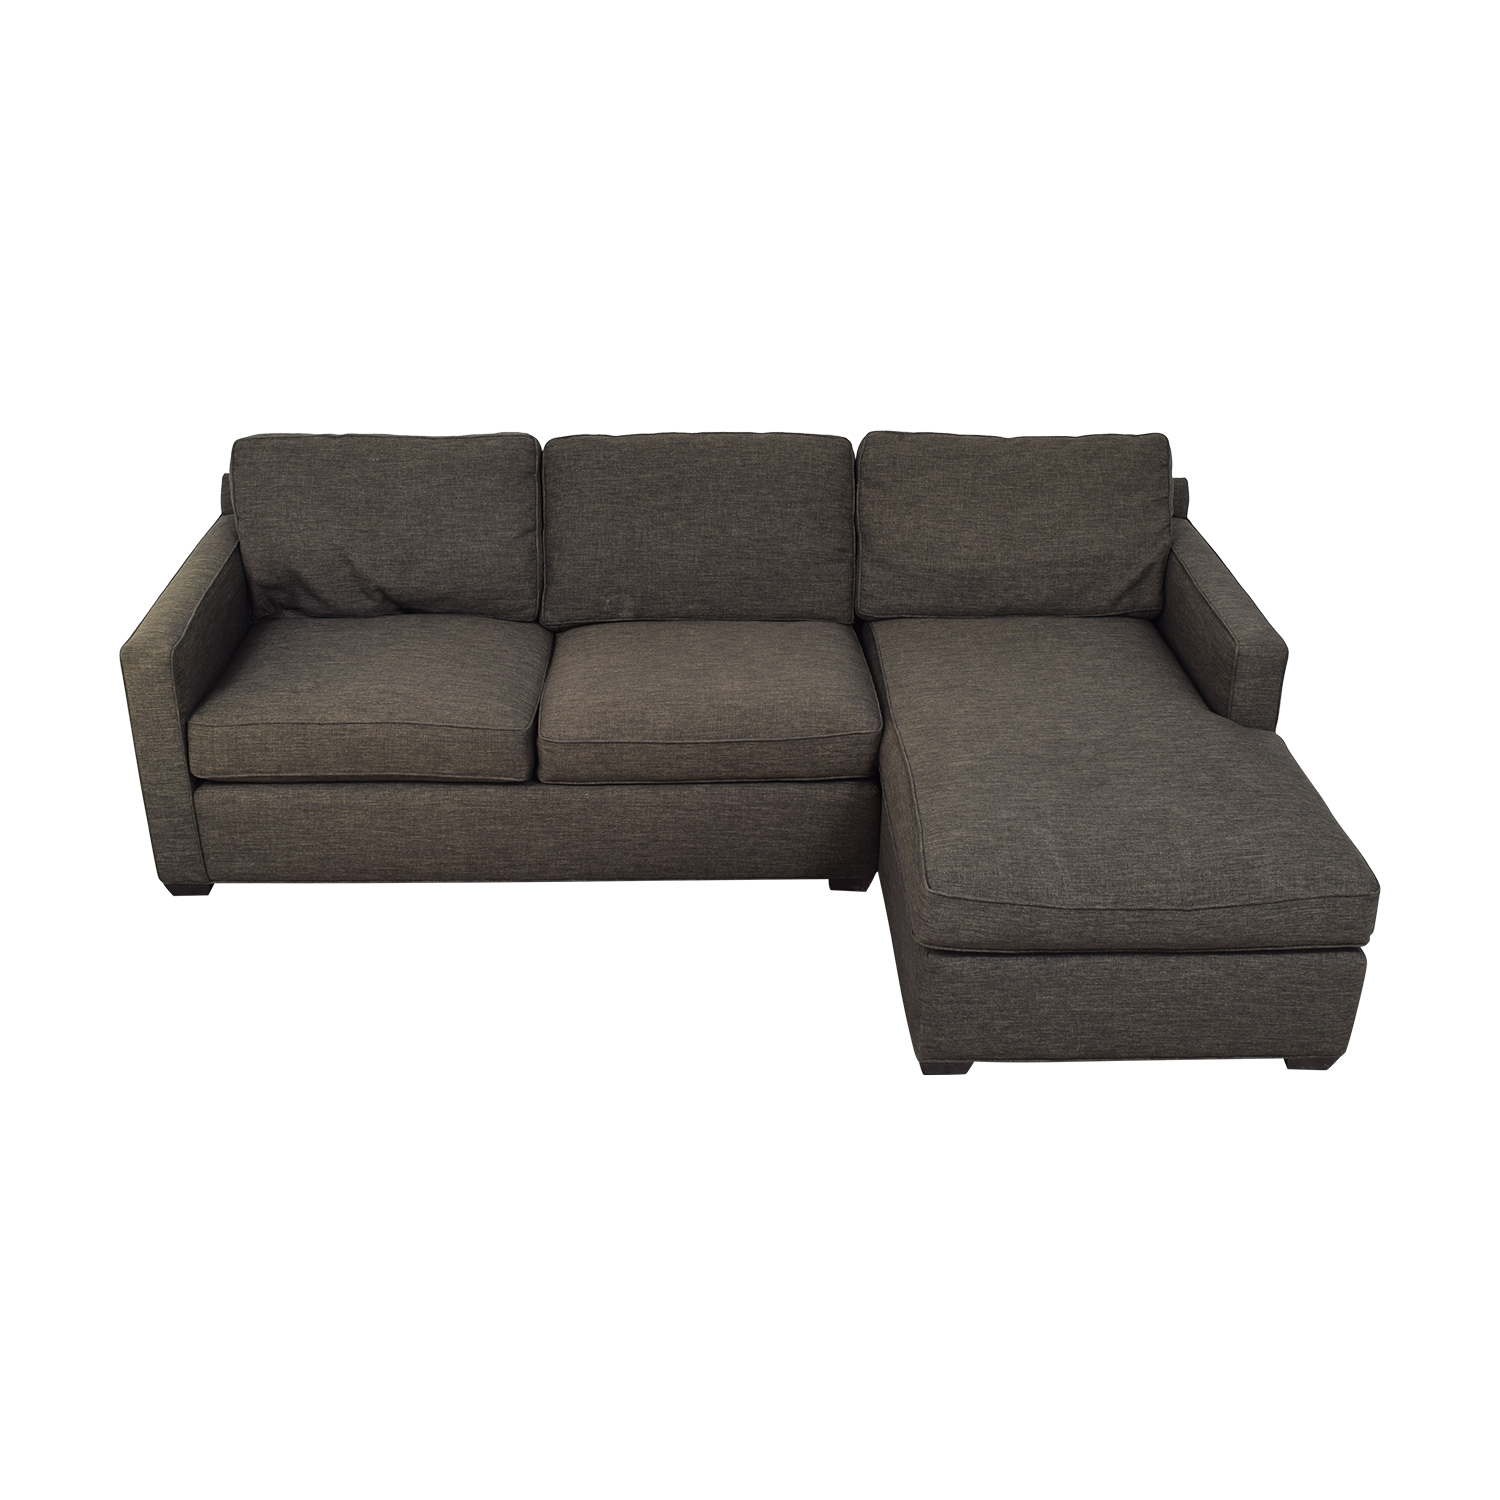 Crate & Barrel Crate & Barrel Grey Chaise Sectional for sale